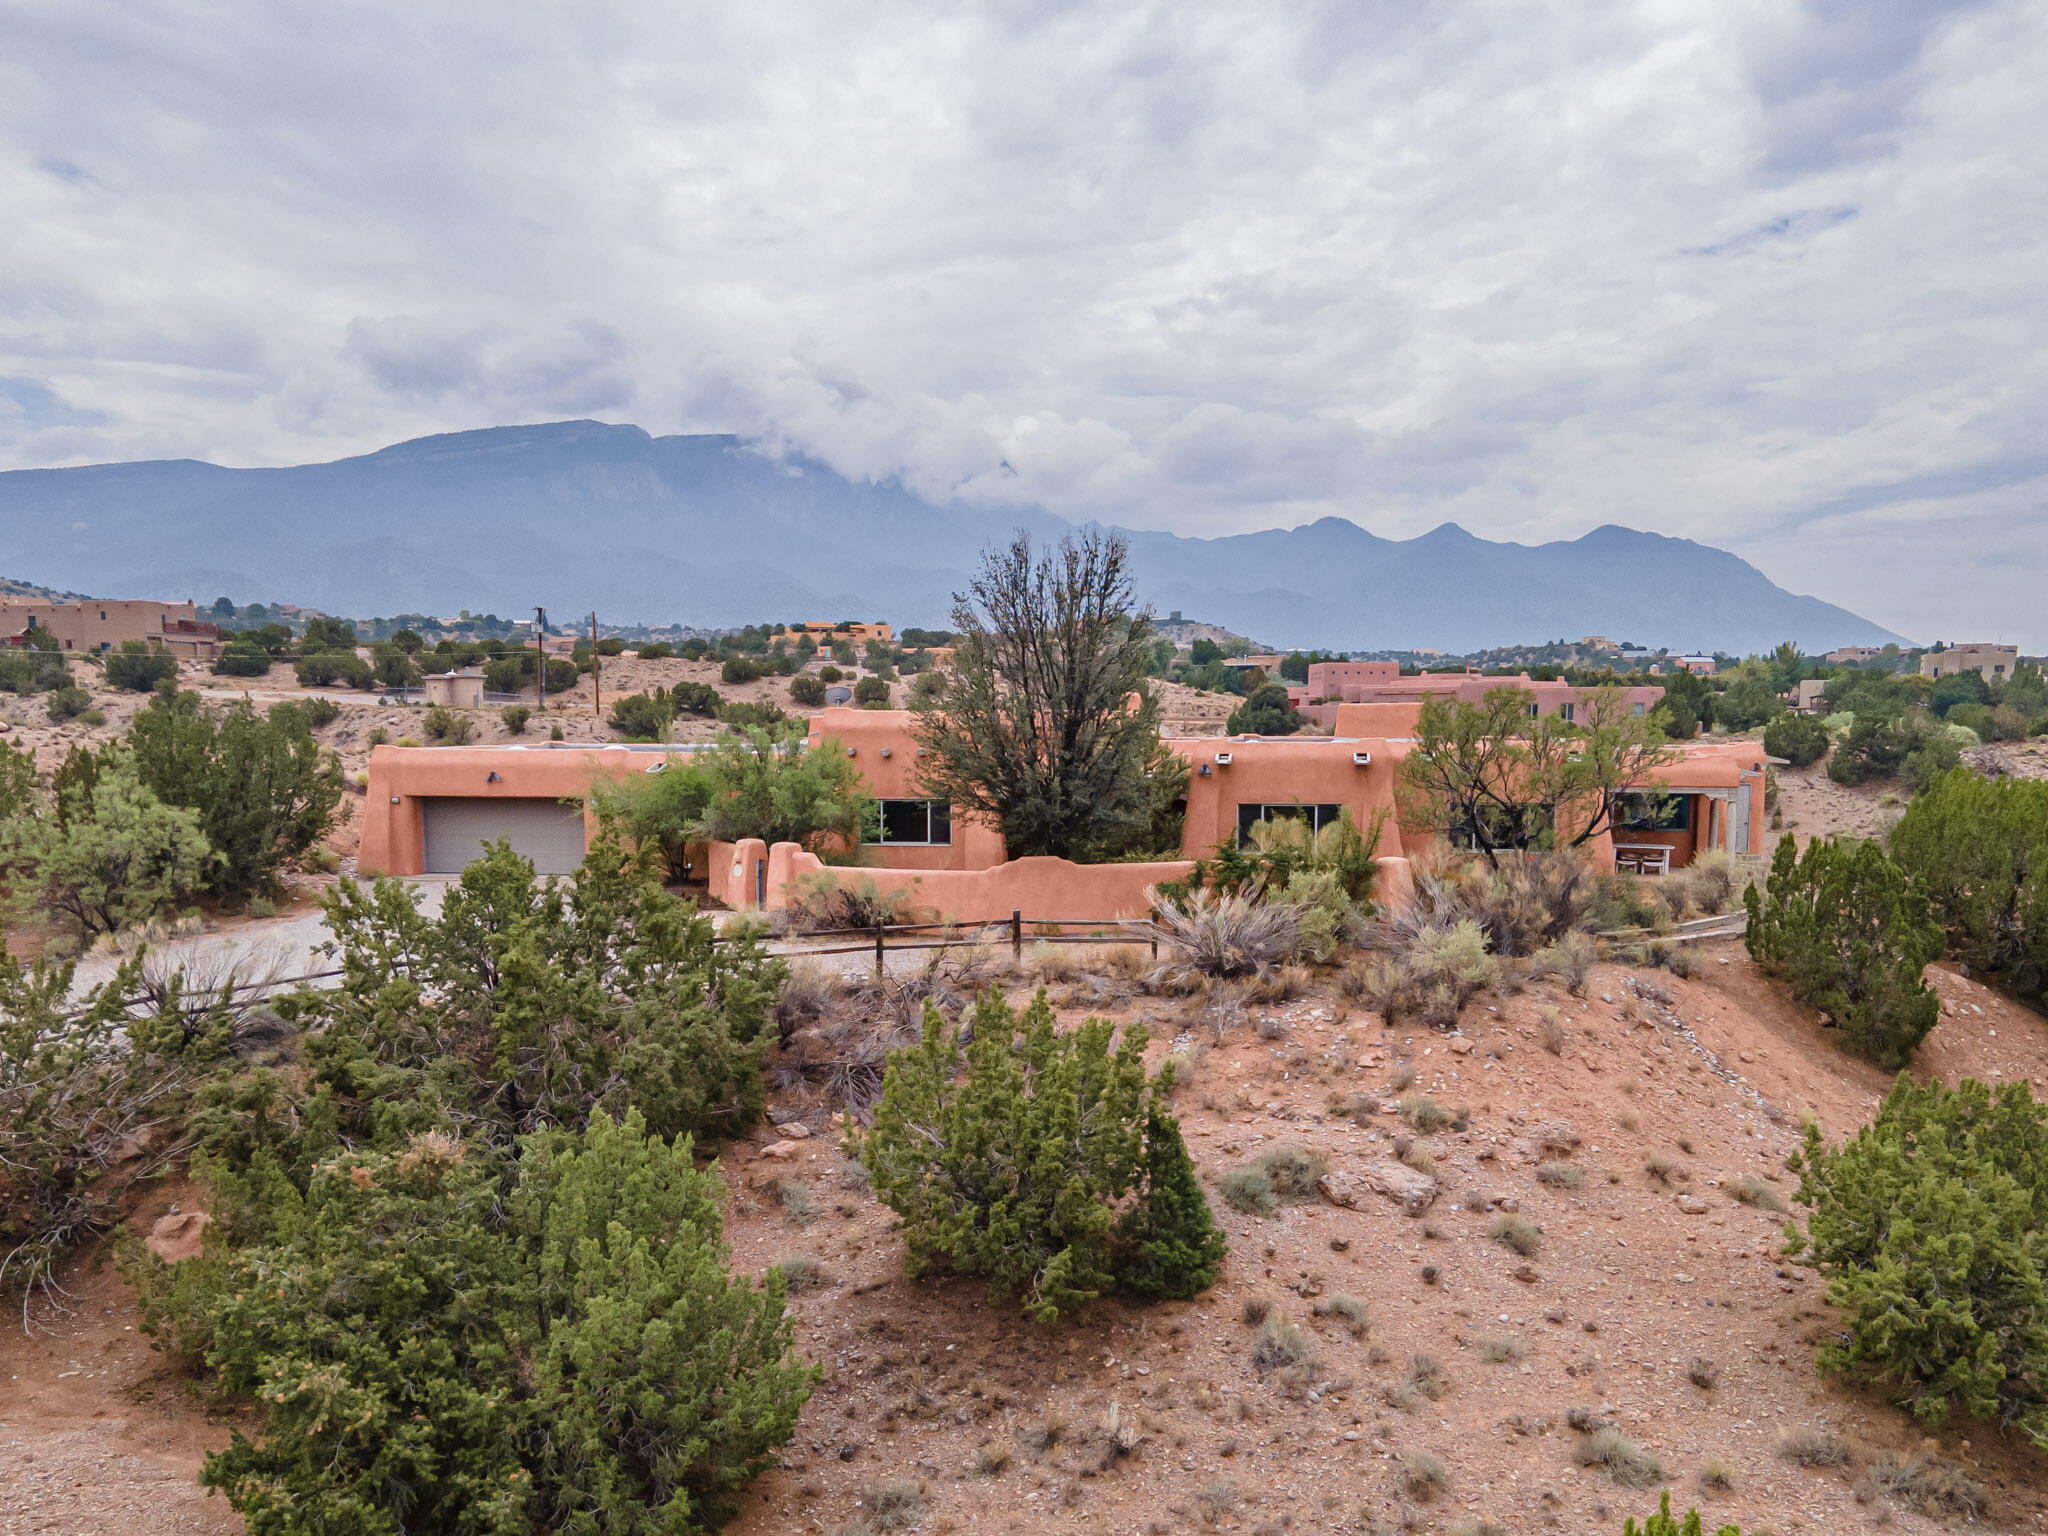 Classic charm and Santa Fe style in this fabulous custom home (feels like a resort) on over 3 acres with fabulous views! The home was designed for the lot to take advantage of all the pretty views of the Mountain and mesas.  Amazing kitchen with Sub Zero, Dacor, gas cook top and double ovens, built in desk and buffet. A kitchen island and peninsula. Nicho's, vigas, arches, adobe, willow branch inserts in the fine wood cabinets, and tile through out. 1 office, 1 studio, 1 darkroom/dog wash and two additional bedrooms. Primary bedroom has two full baths. and a swim spa. Extra storage in the garage. Formal and cozy dining space.  Several covered porches taking advantage of the wonderful New Mexico weather. Make this your next home and you will never want to leave.